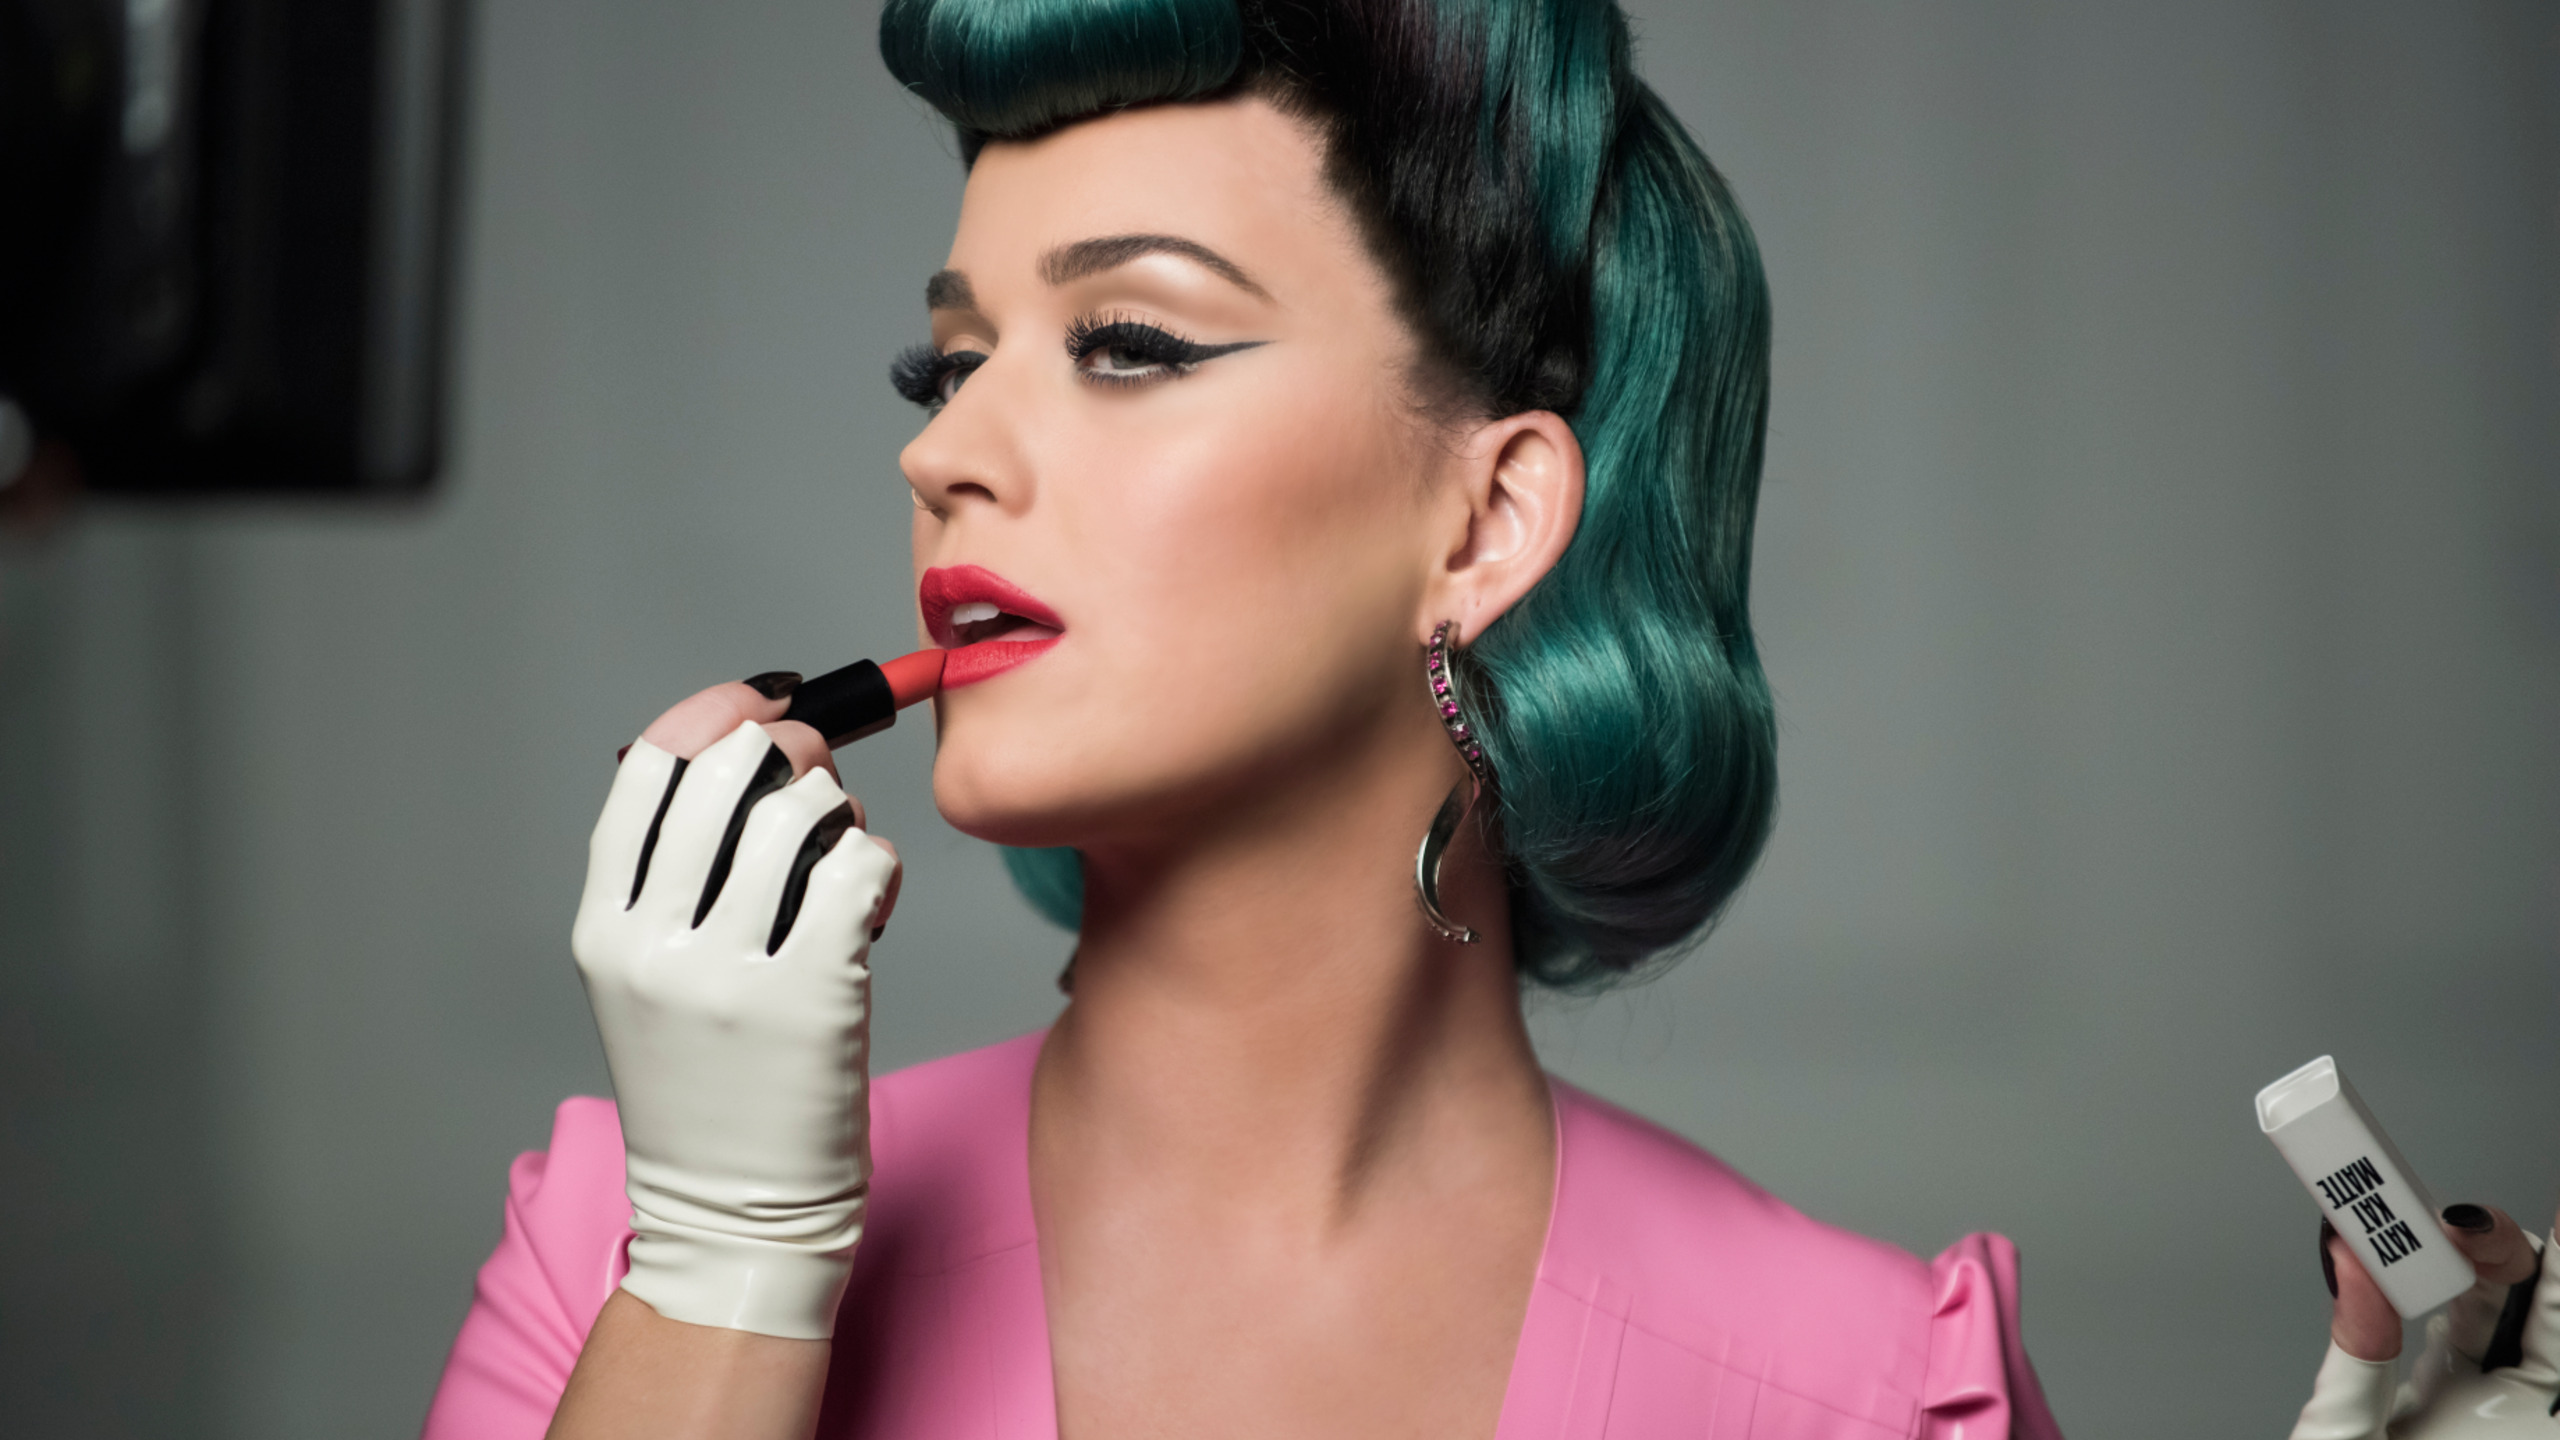 katy-perry-2016-latest-qhd.jpg